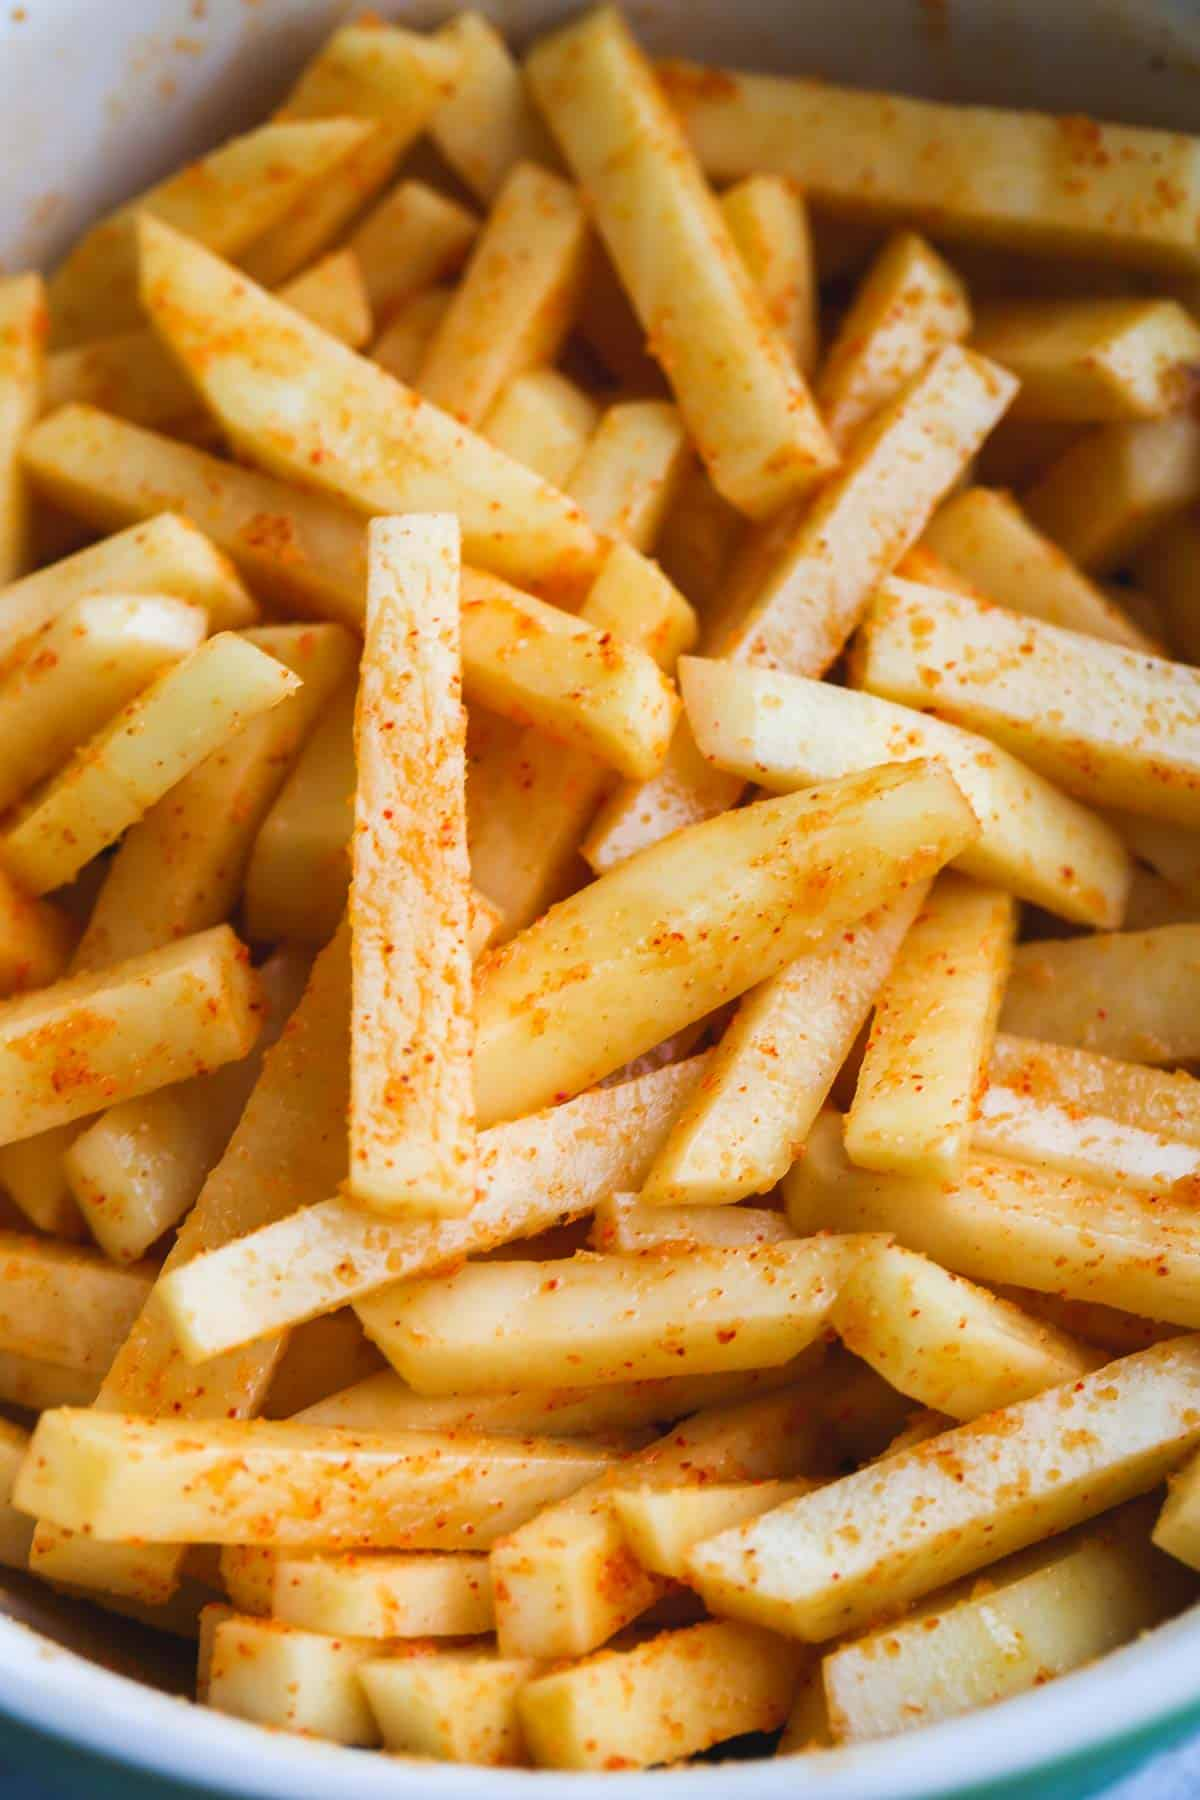 French fries coated with seasonings